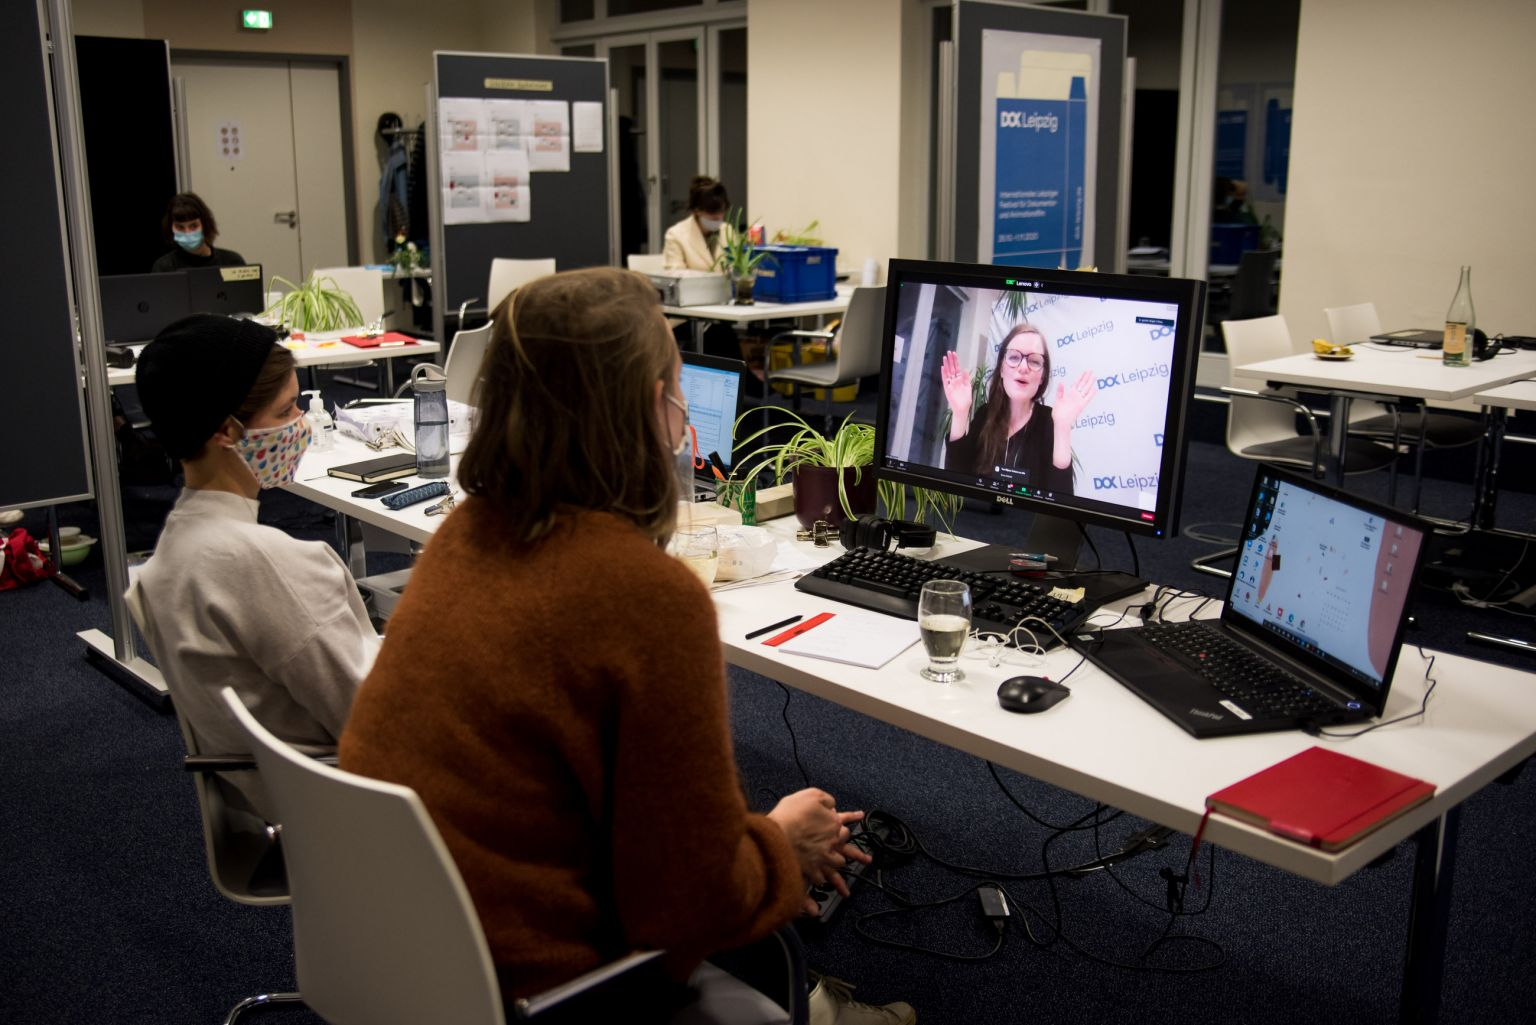 In an office two women with masks are sitting in front of a computer, on the screen a video of a cheering Brigid O'Shea can be seen